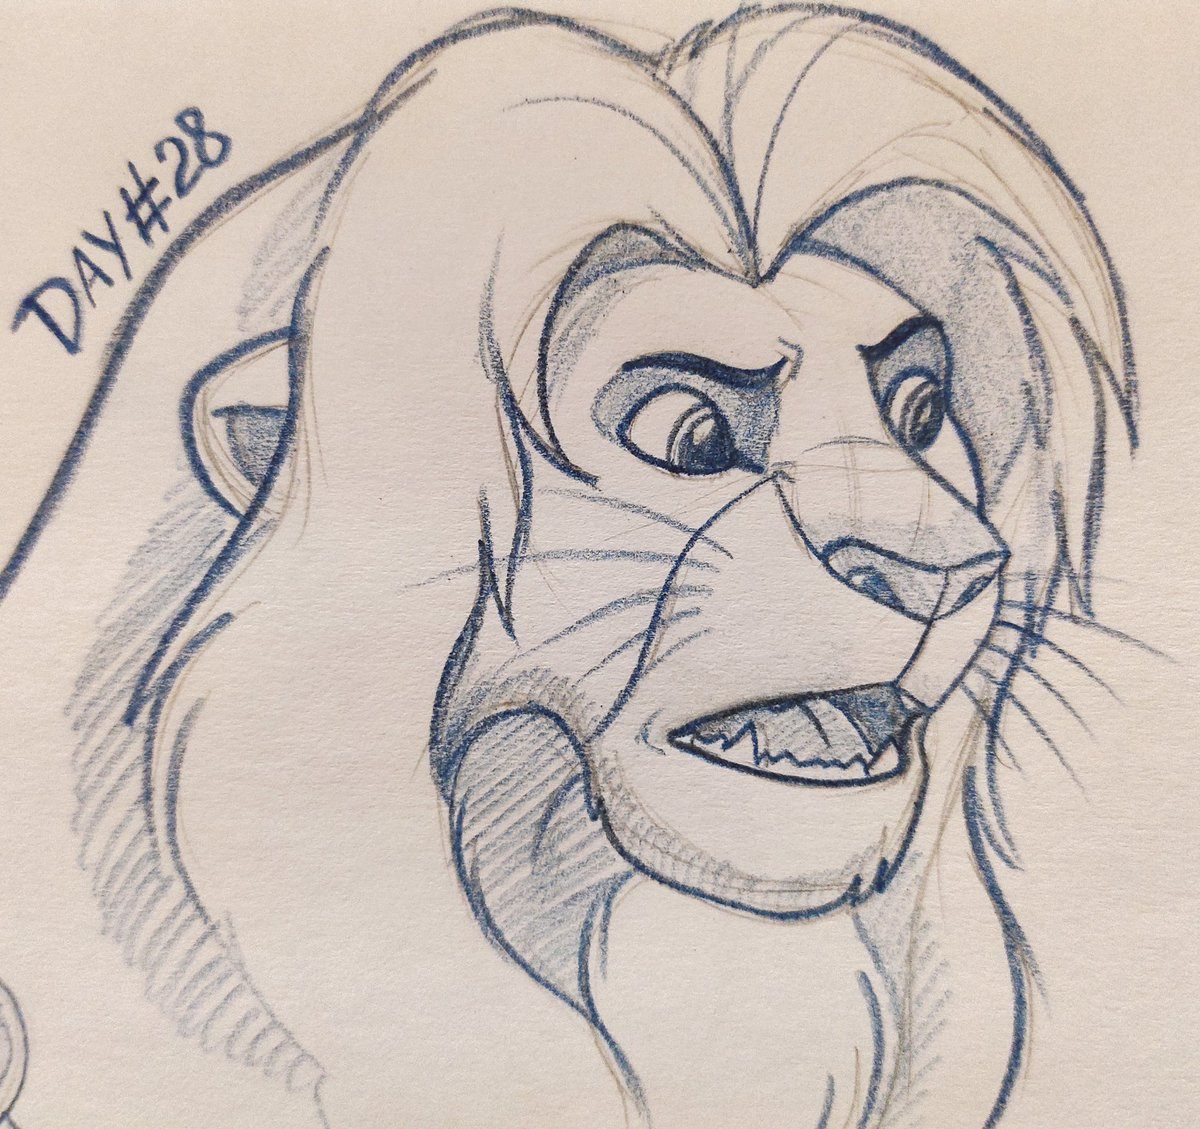 My challenge #Tlk_month close to end, wow I did 28 sketches in a row! It's first time when I keep doing sketches each day and don't give up on it ^^ #tlk #TheLionKing #sketch #headshot #lion #feline #animalartist #animalart https://t.co/KXdvM81FEc